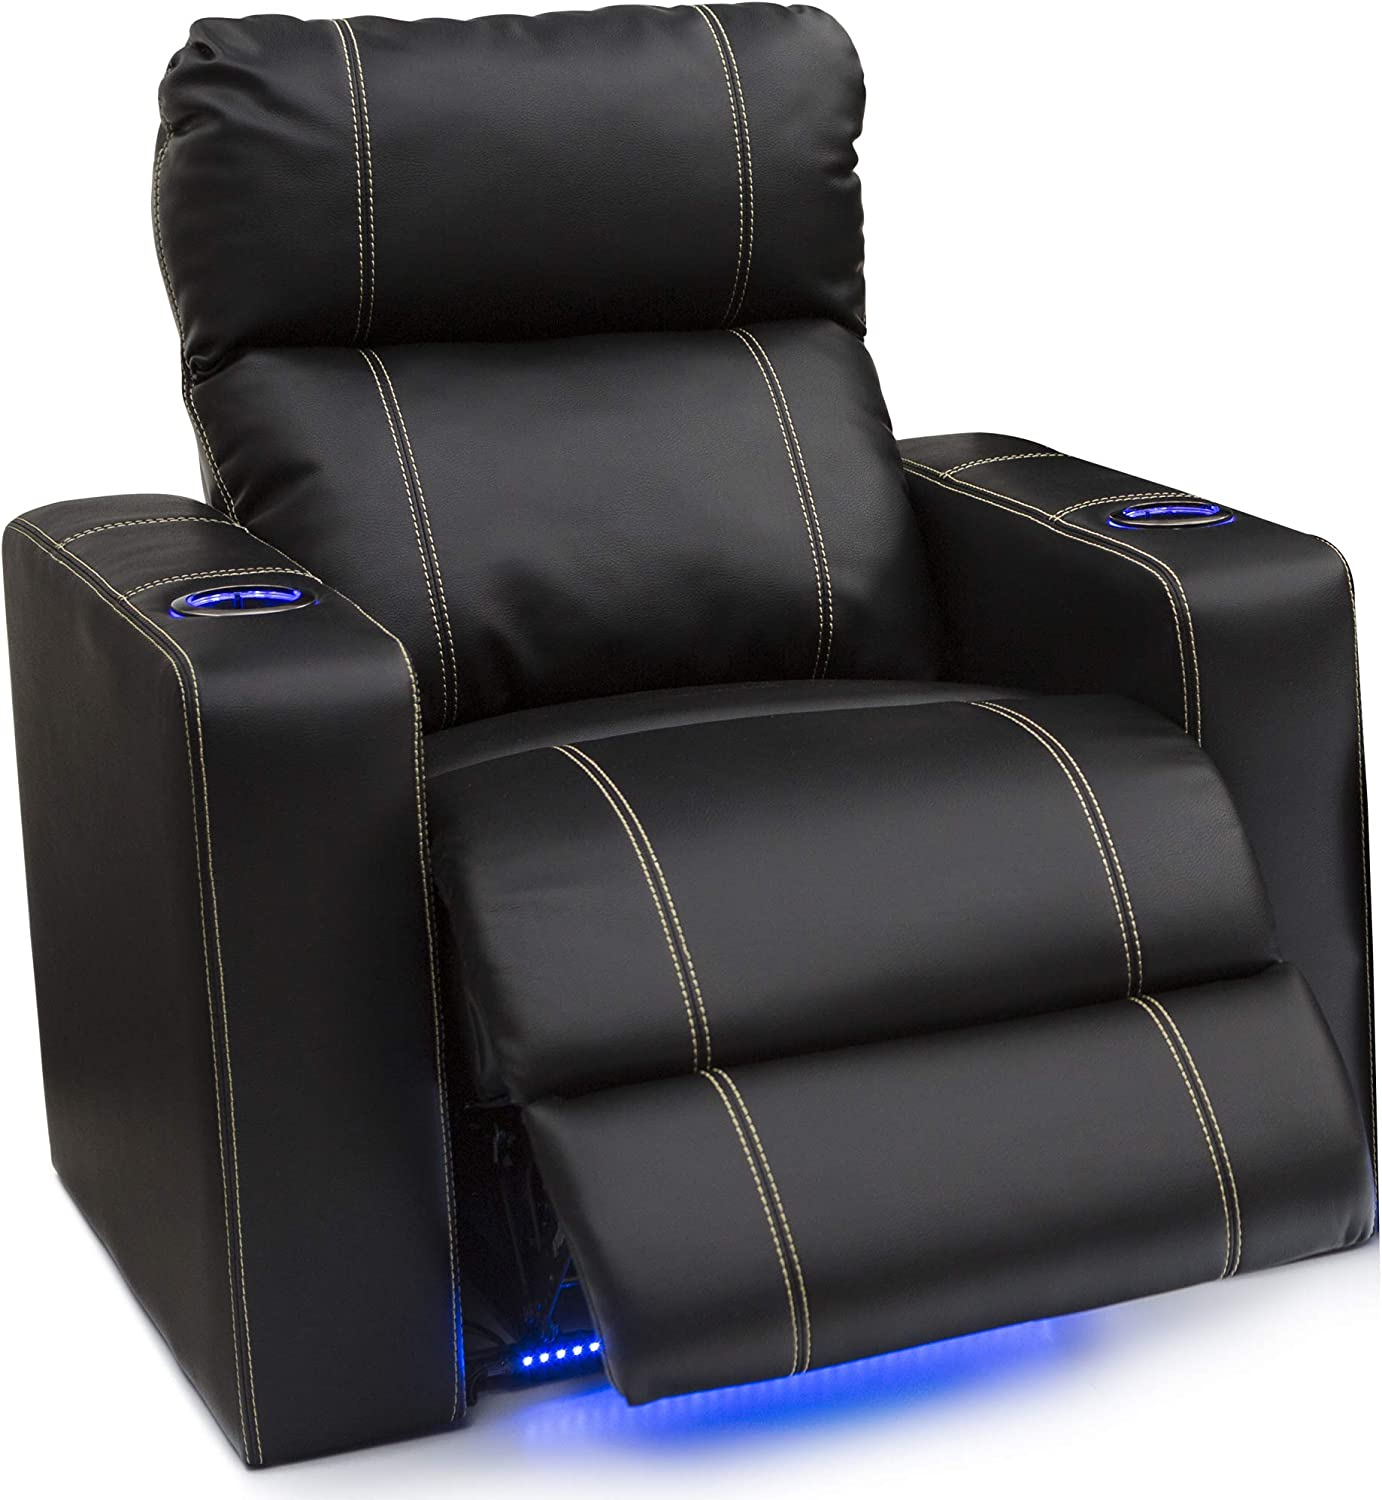 Seatcraft Dynasty - Home Theater Seating - Power Recline - Leather Gel - Base Lighting - Lighted Cup Holders - USB Charging - Wall Hugger - Single Recliner, Black